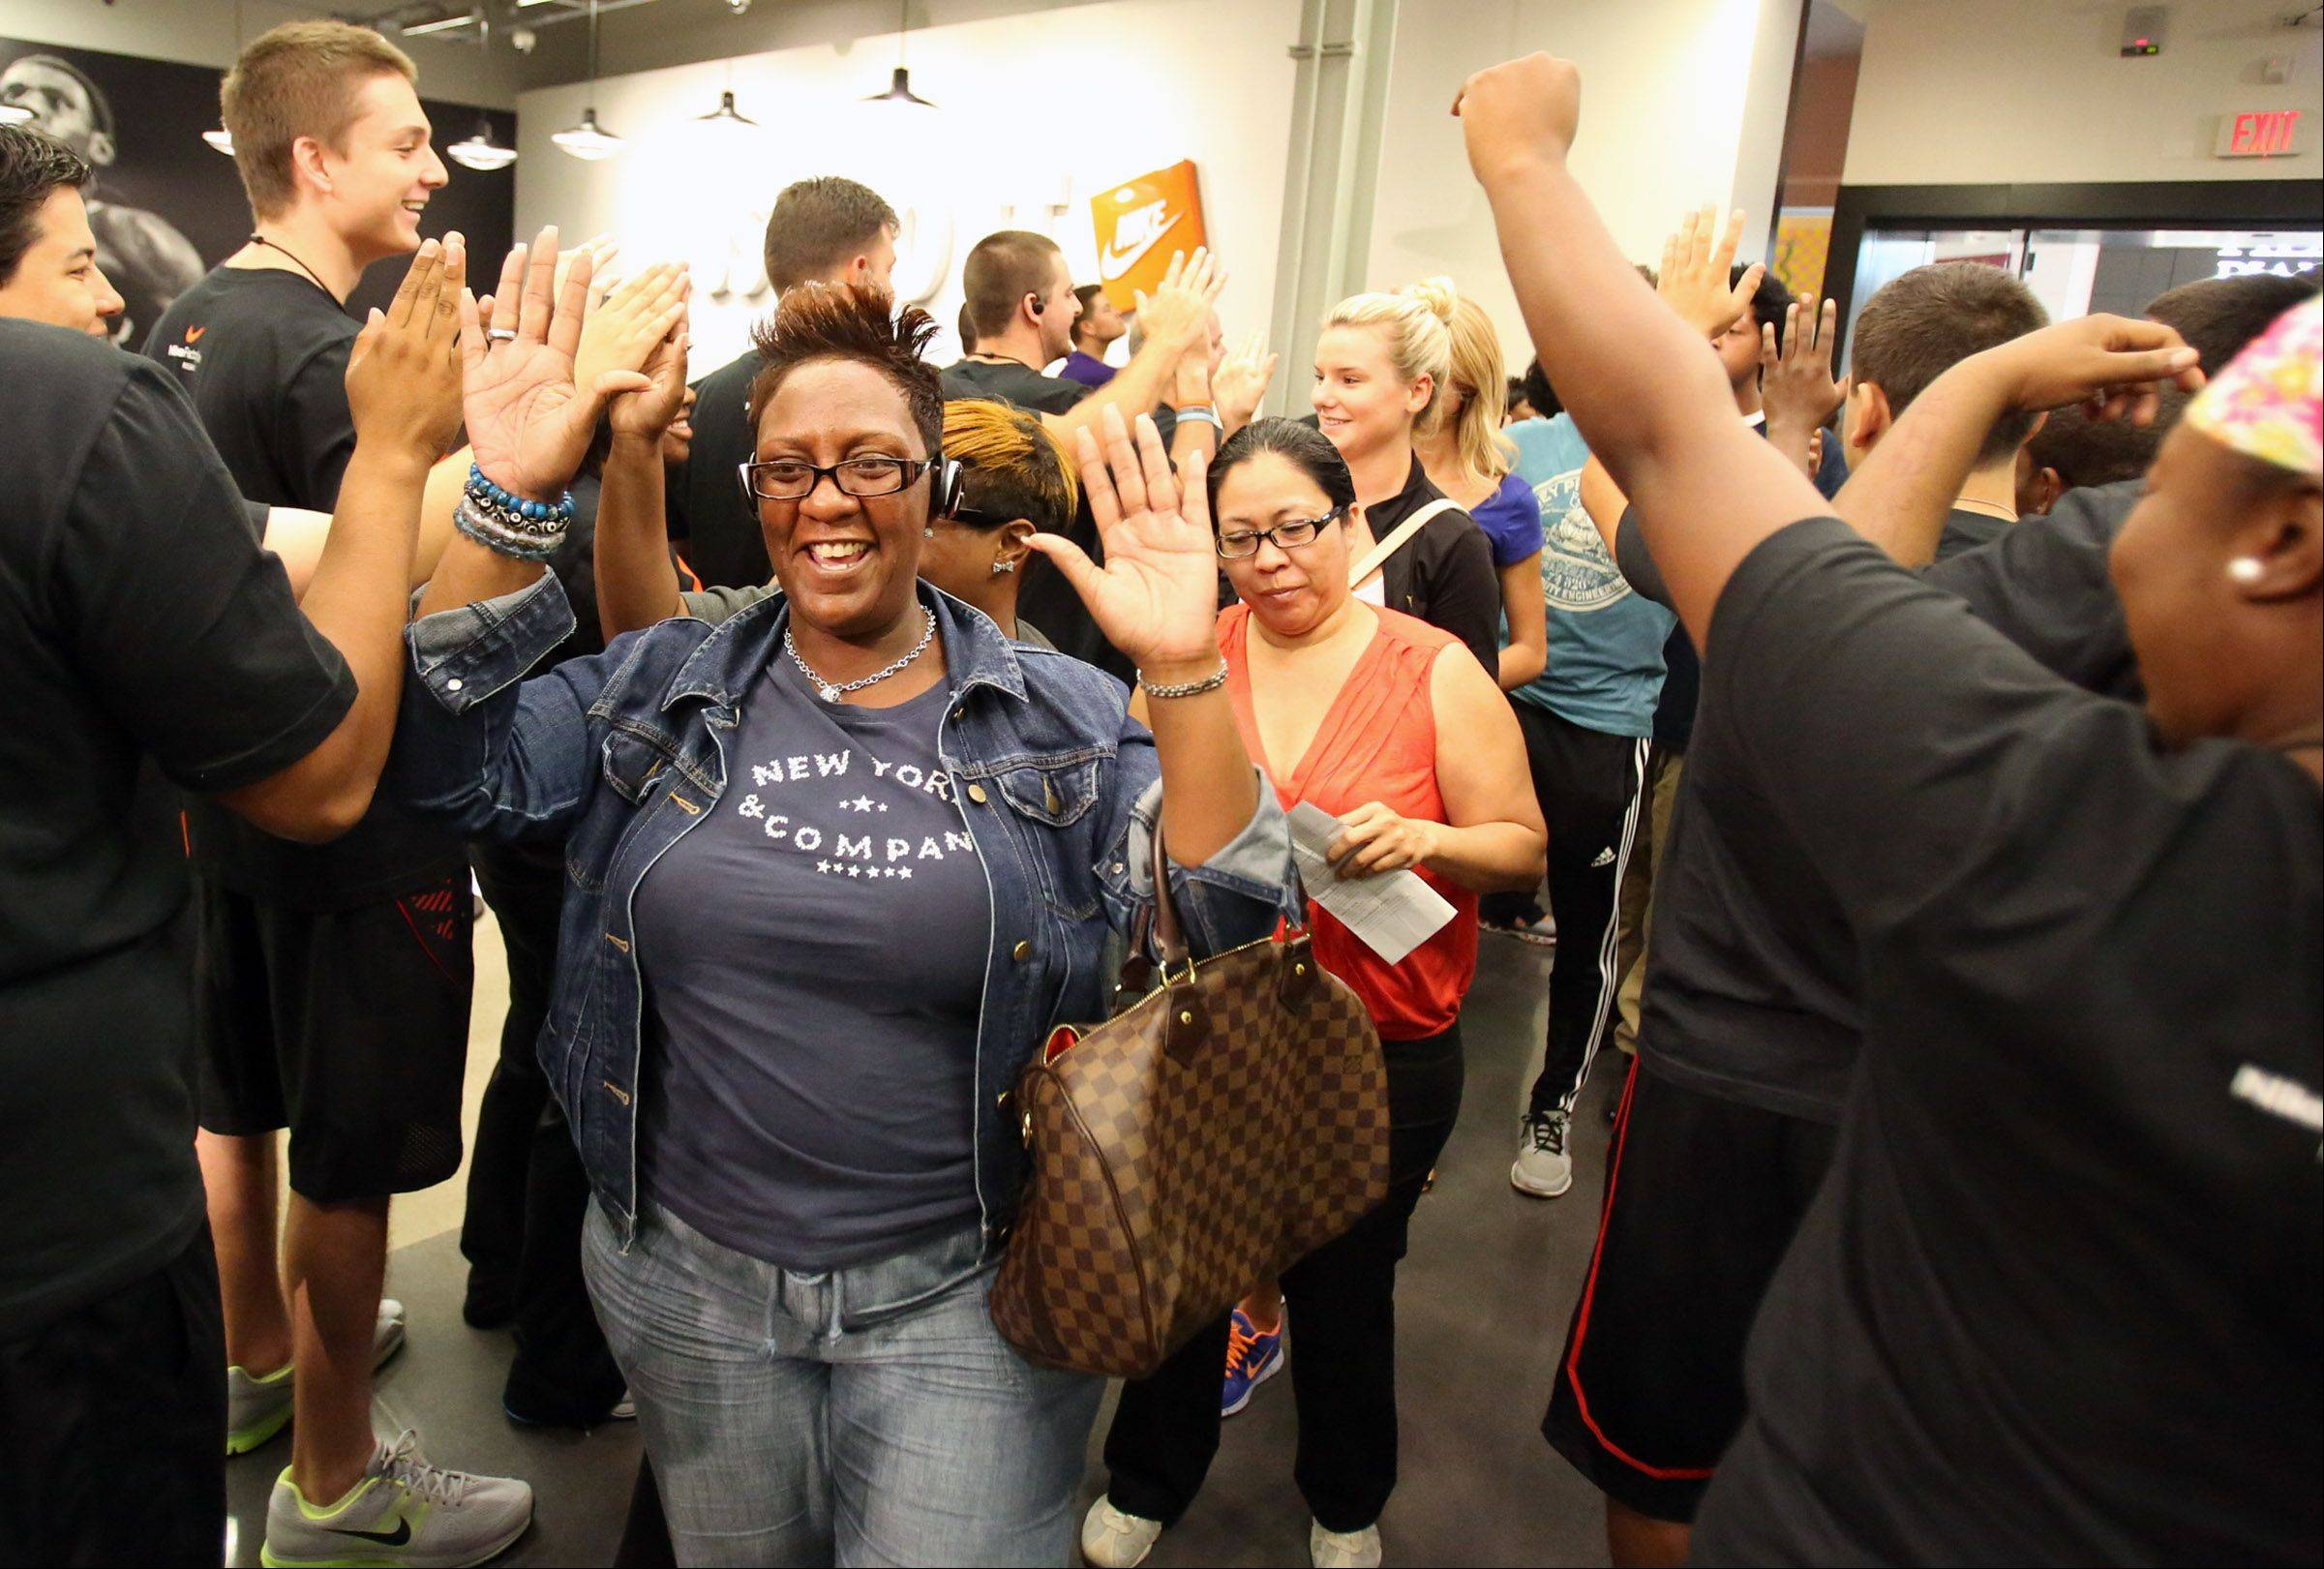 About 75 shoppers who were lined up in front of The Nike Store enter with high-fives by store employees for its grand opening at the Fashion Outlets of Chicago on Thursday.